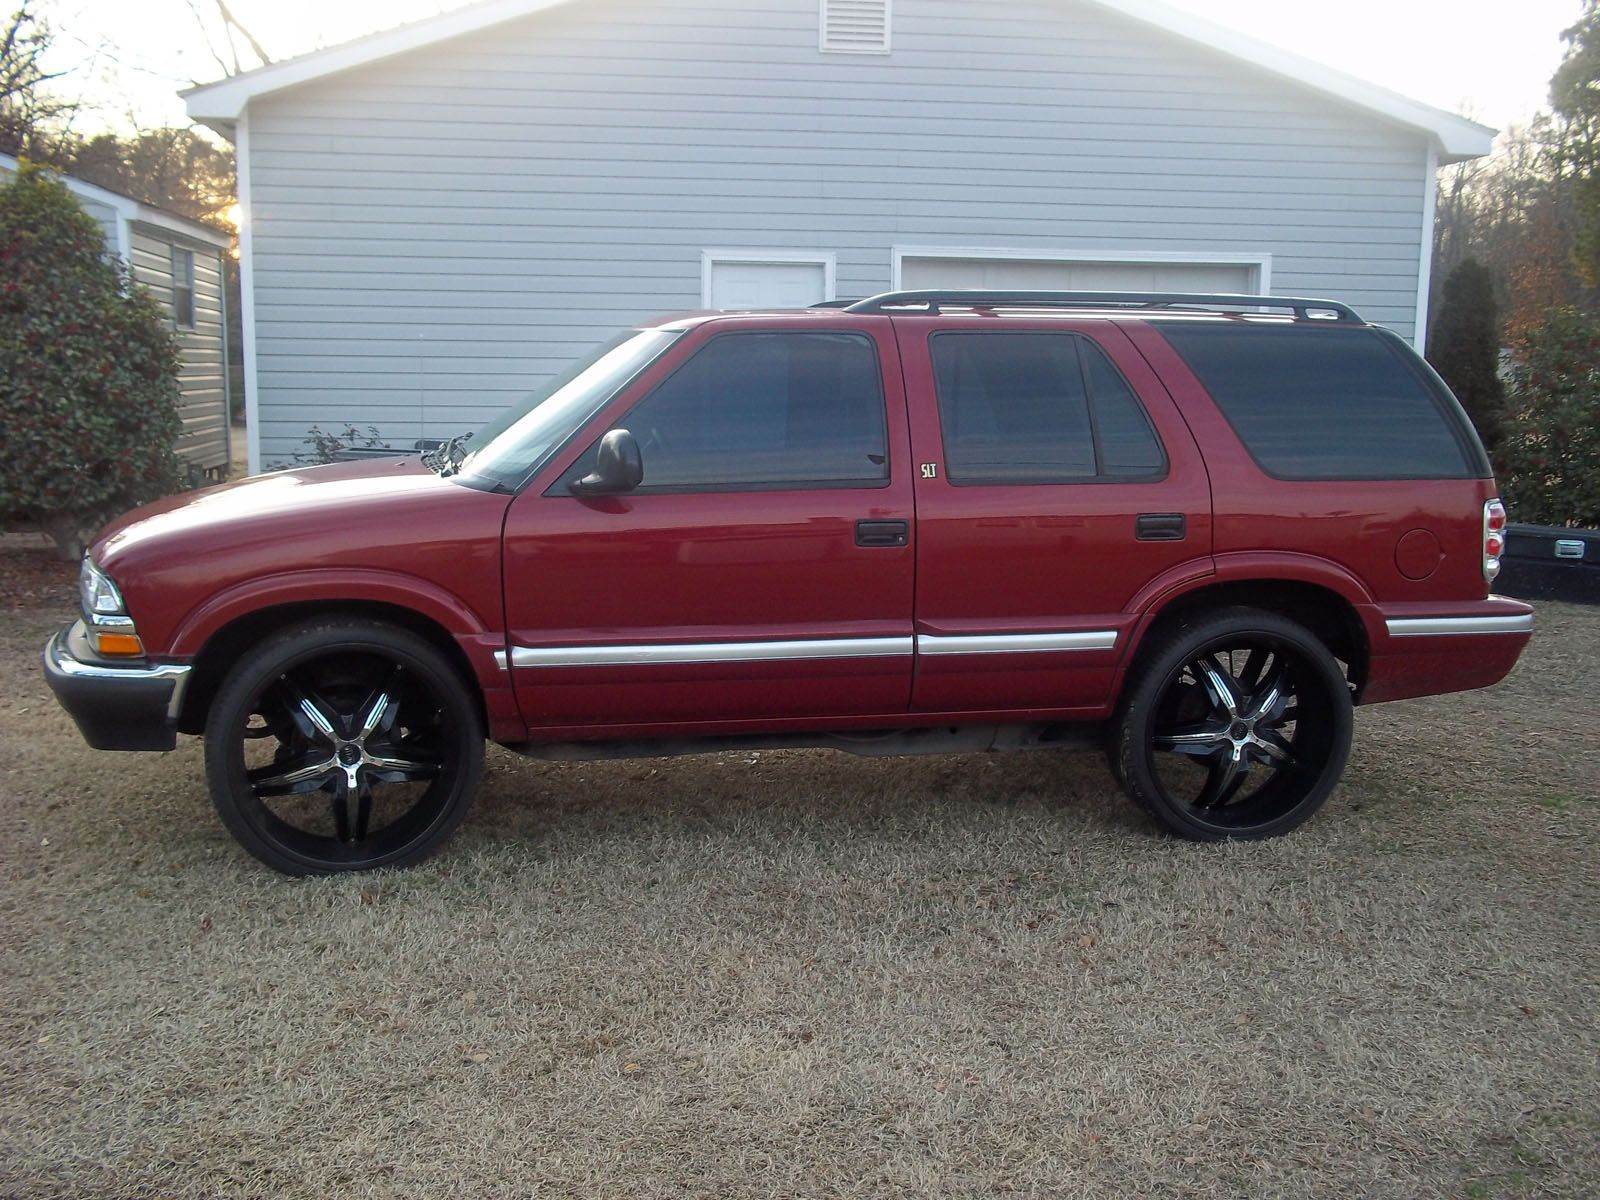 sale builds gmc blazer restored forum forums chevy jimmy for img